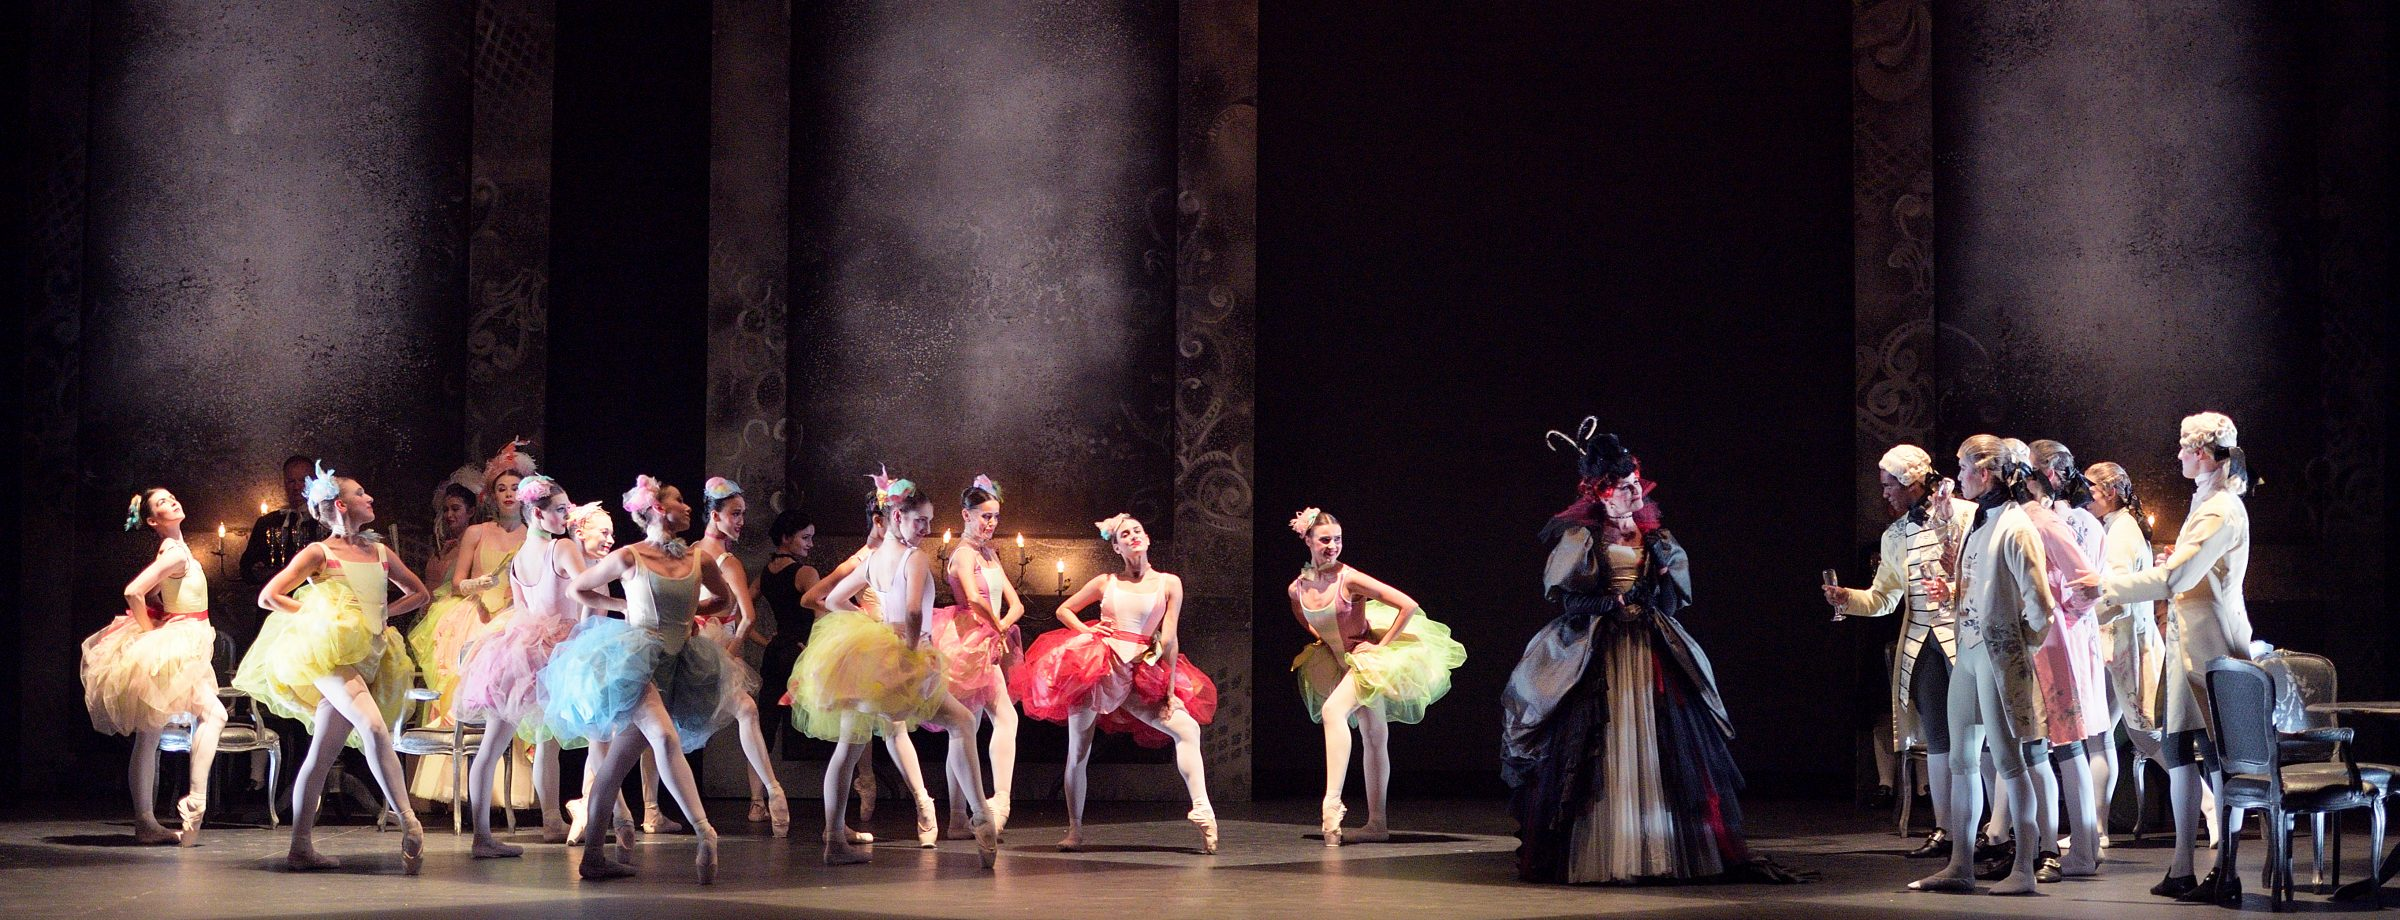 English National Ballet in Manon (c) Laurent Liotardo (2)